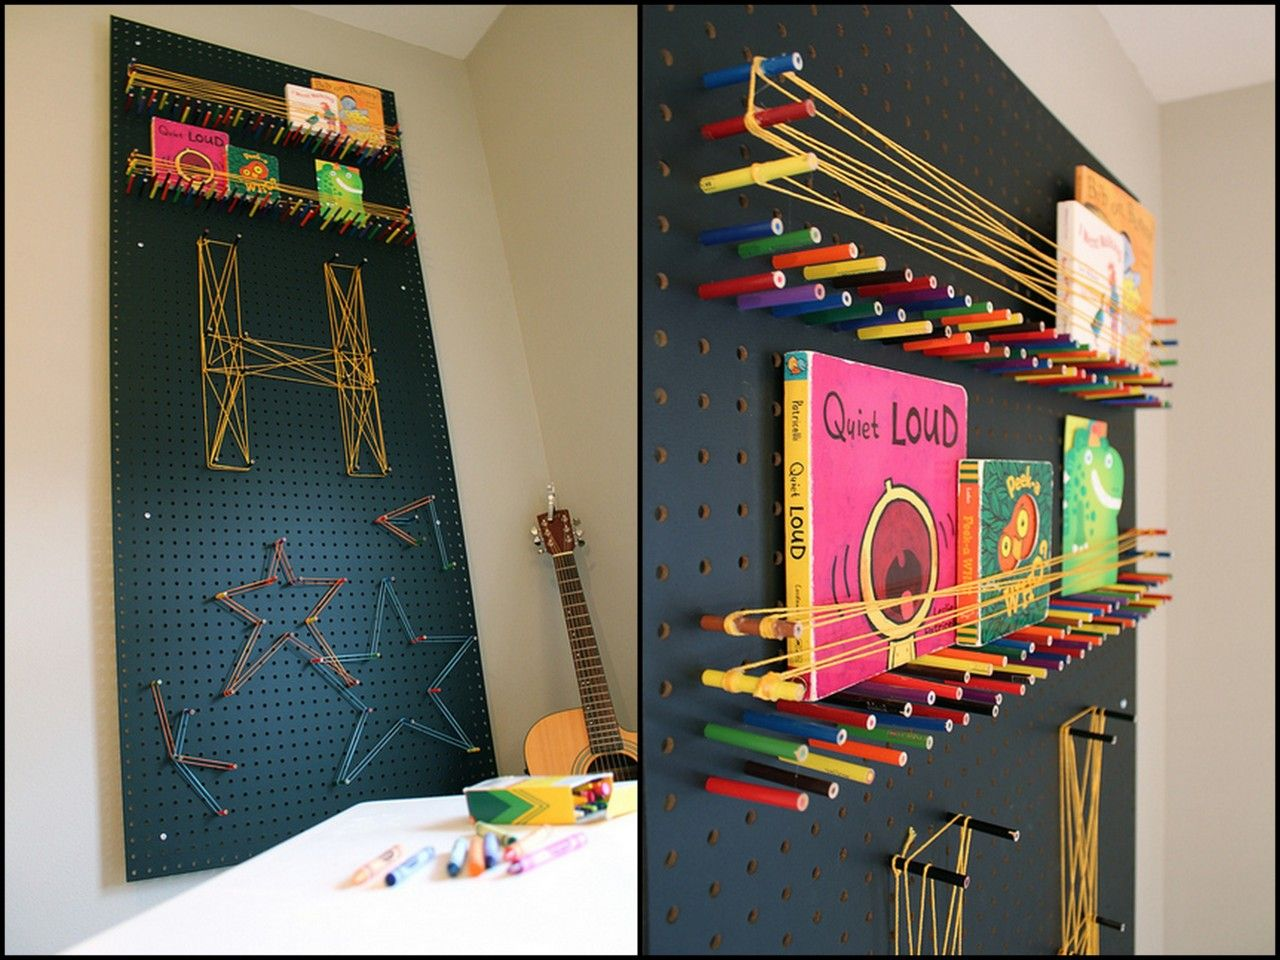 DIY Pegboard Customizable Wall Art. Love this idea of using colored pencils  and cheap pegboard